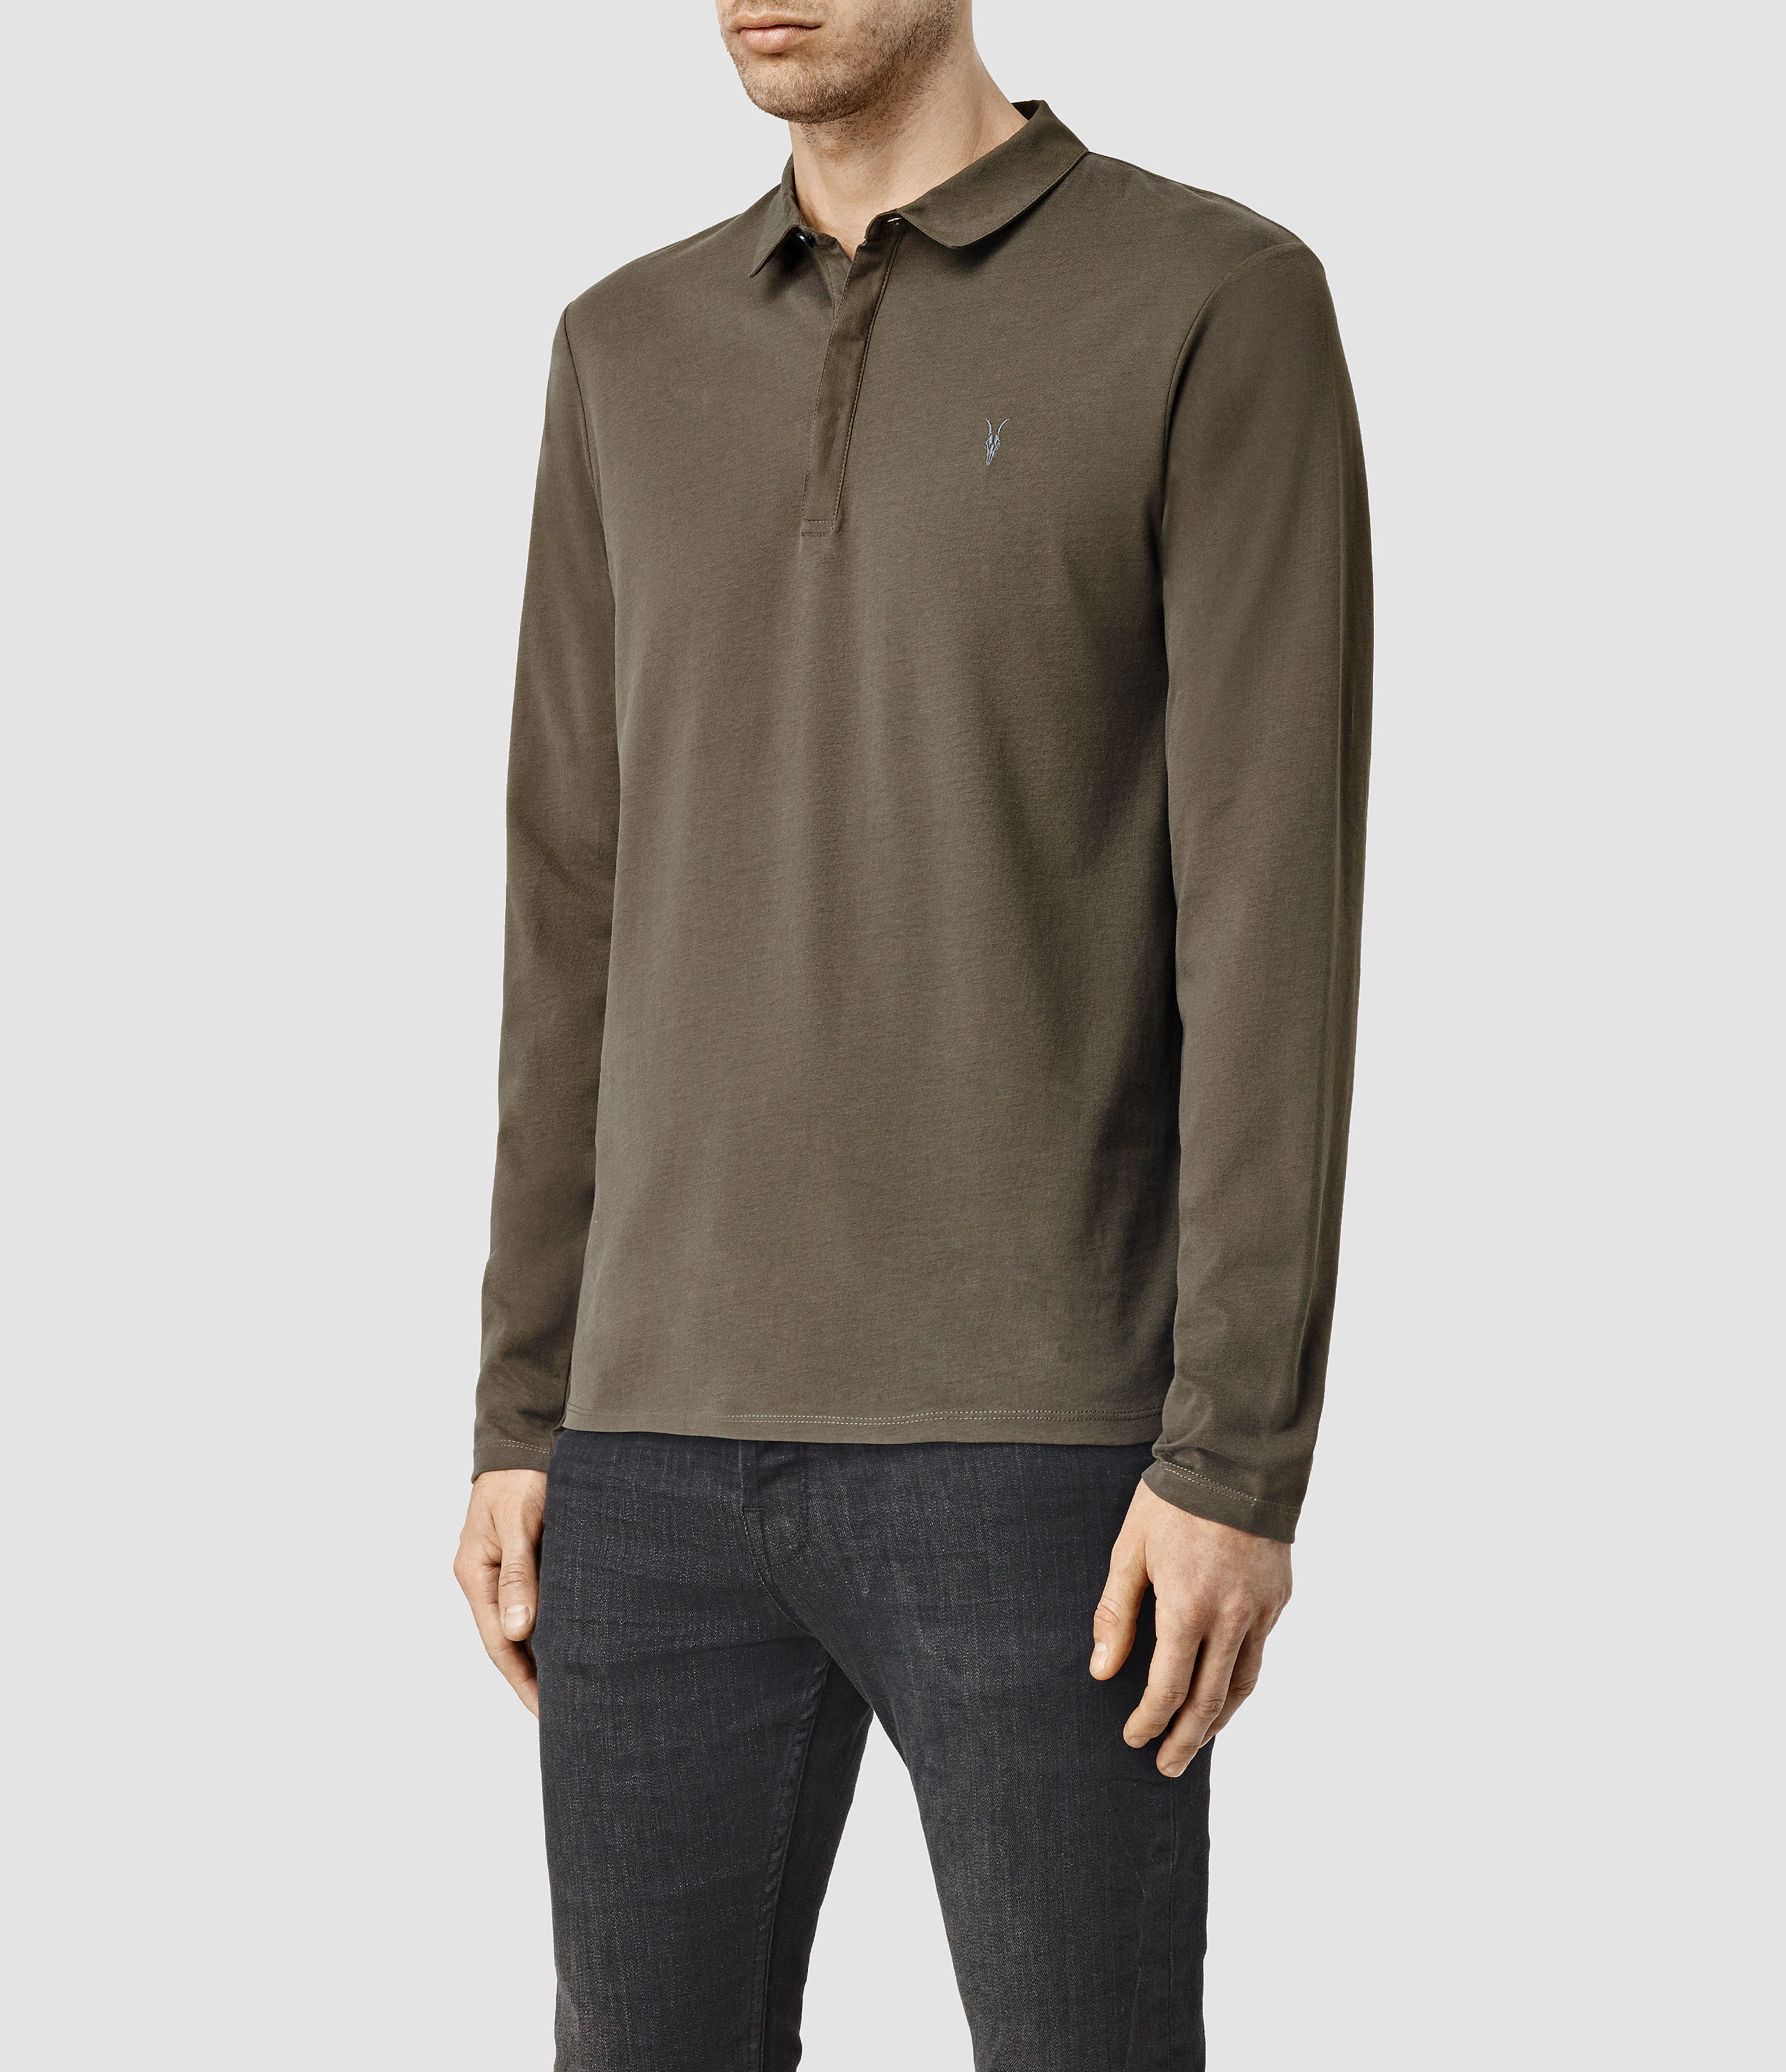 Lyst allsaints brace long sleeved polo shirt usa usa in for All saints polo shirt